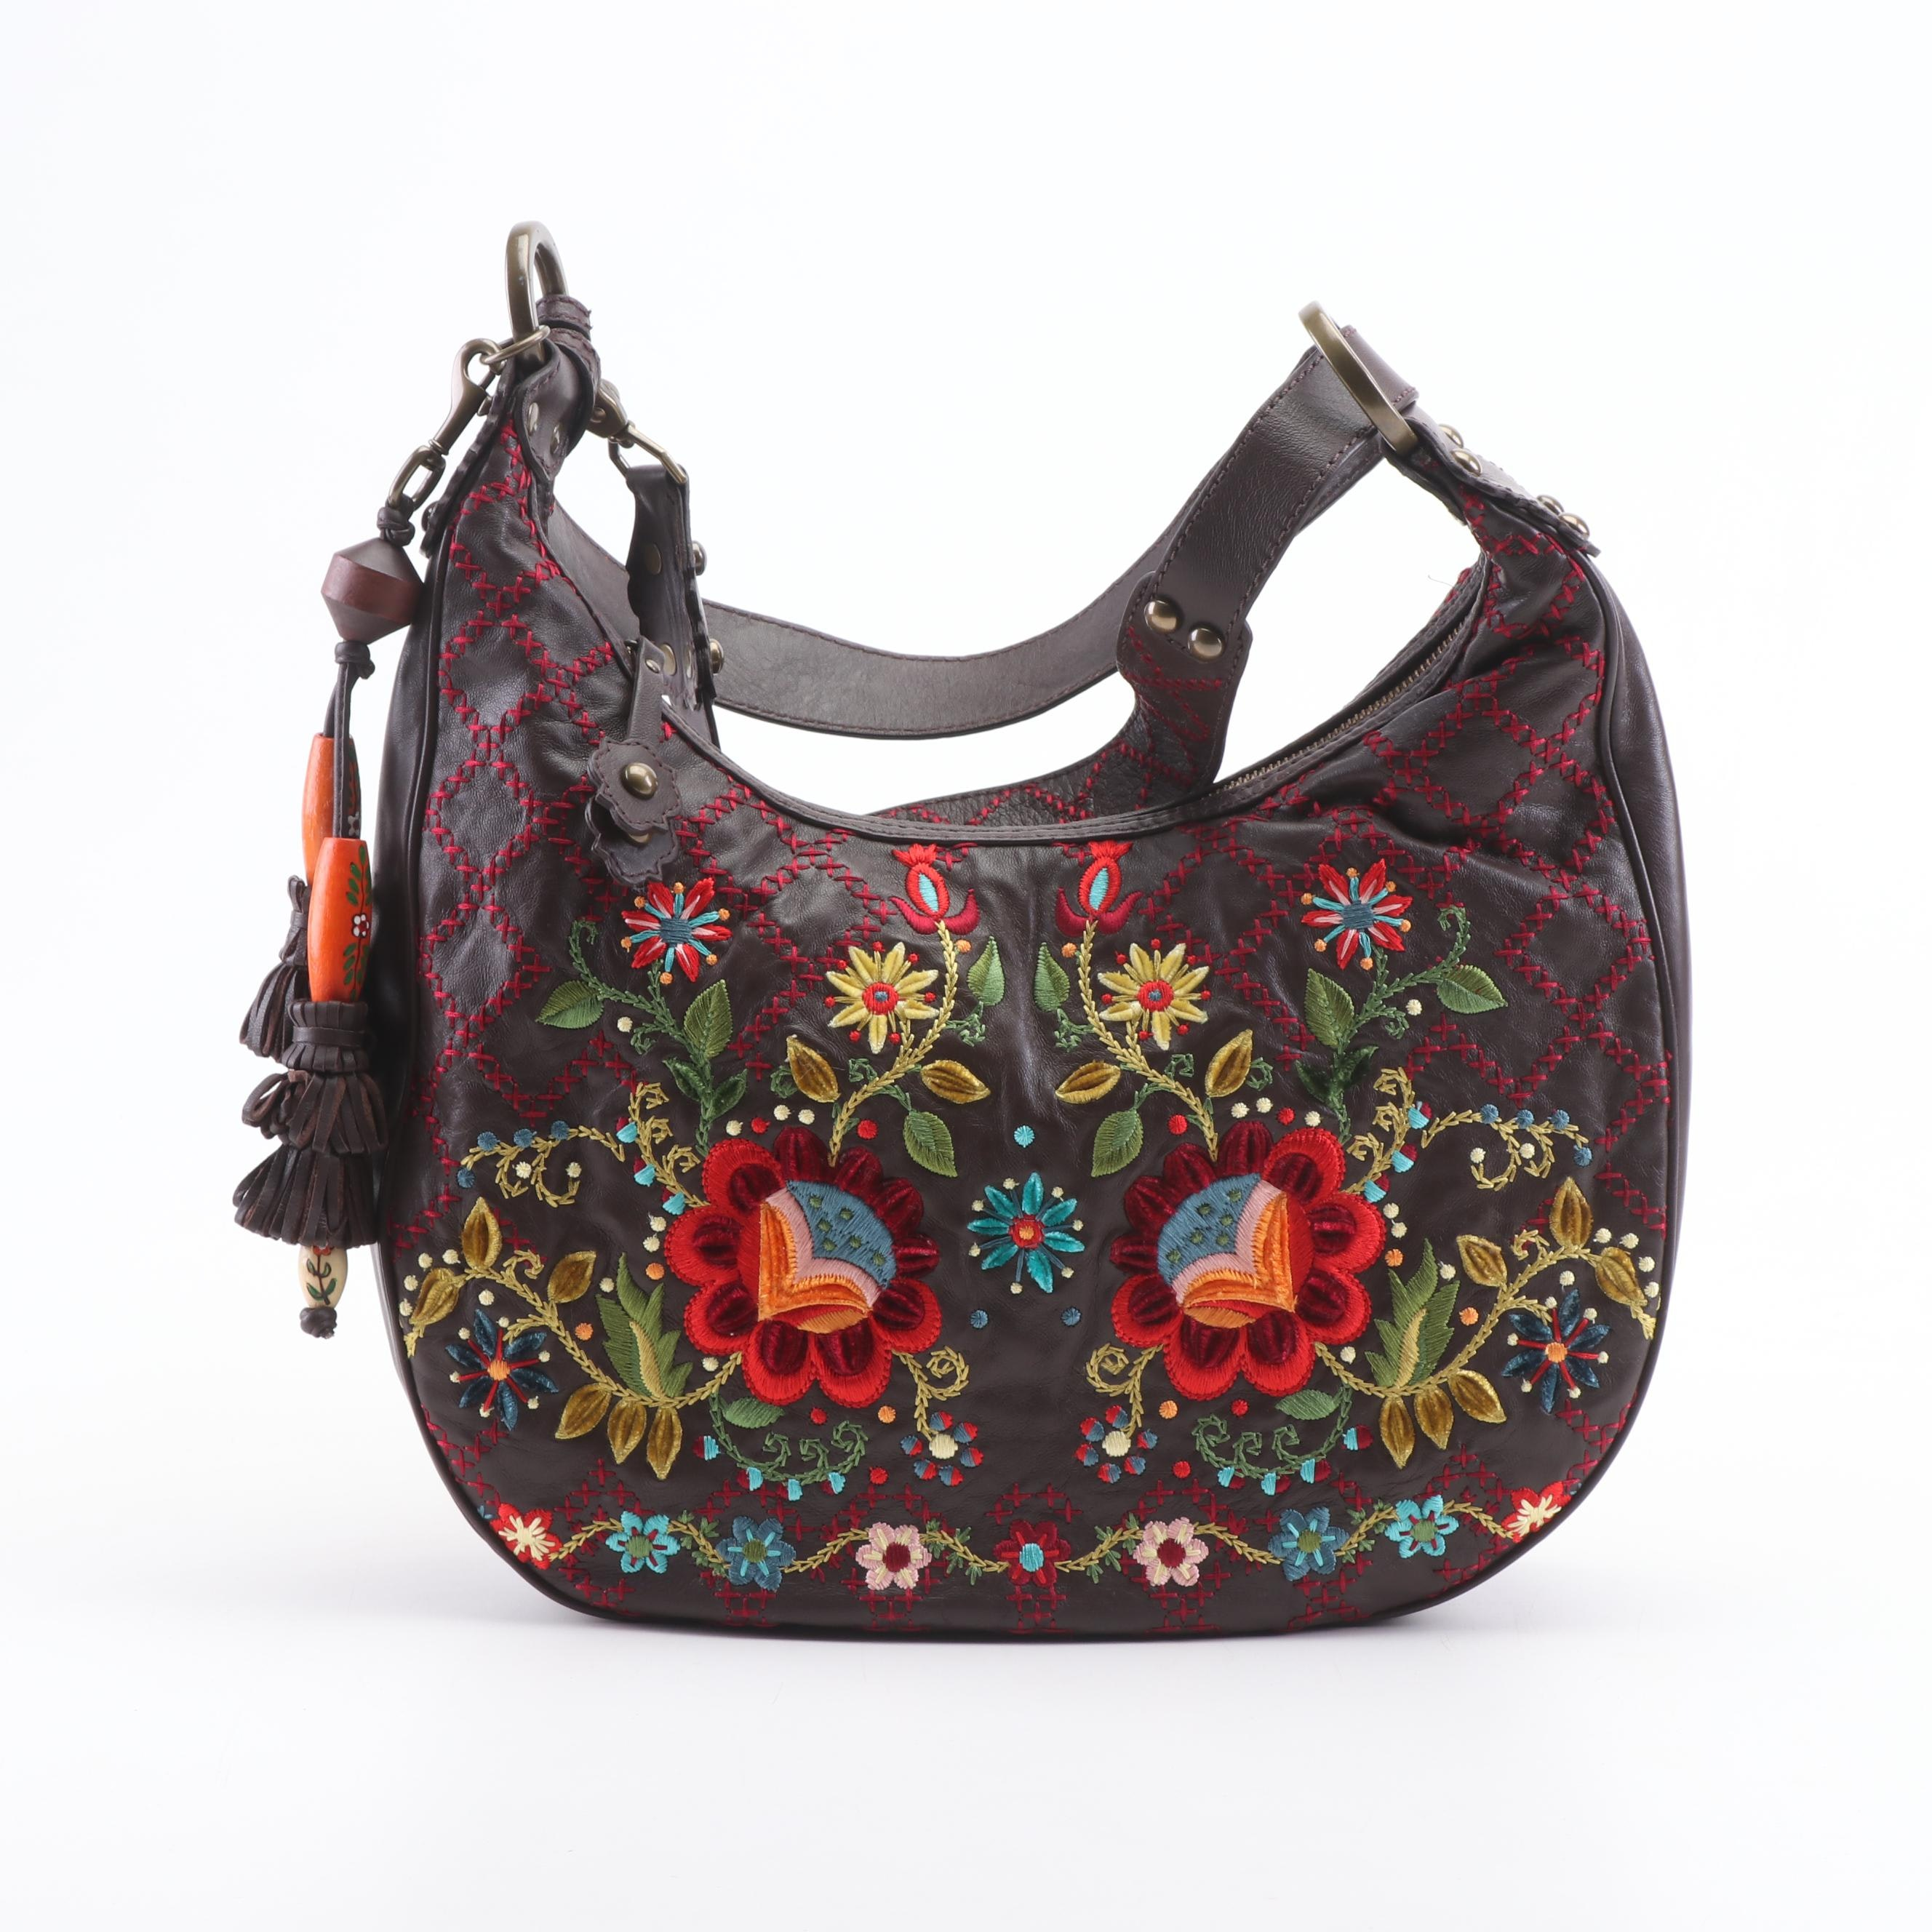 Isabella Fiore Leather and Embroidered Shoulder Bag